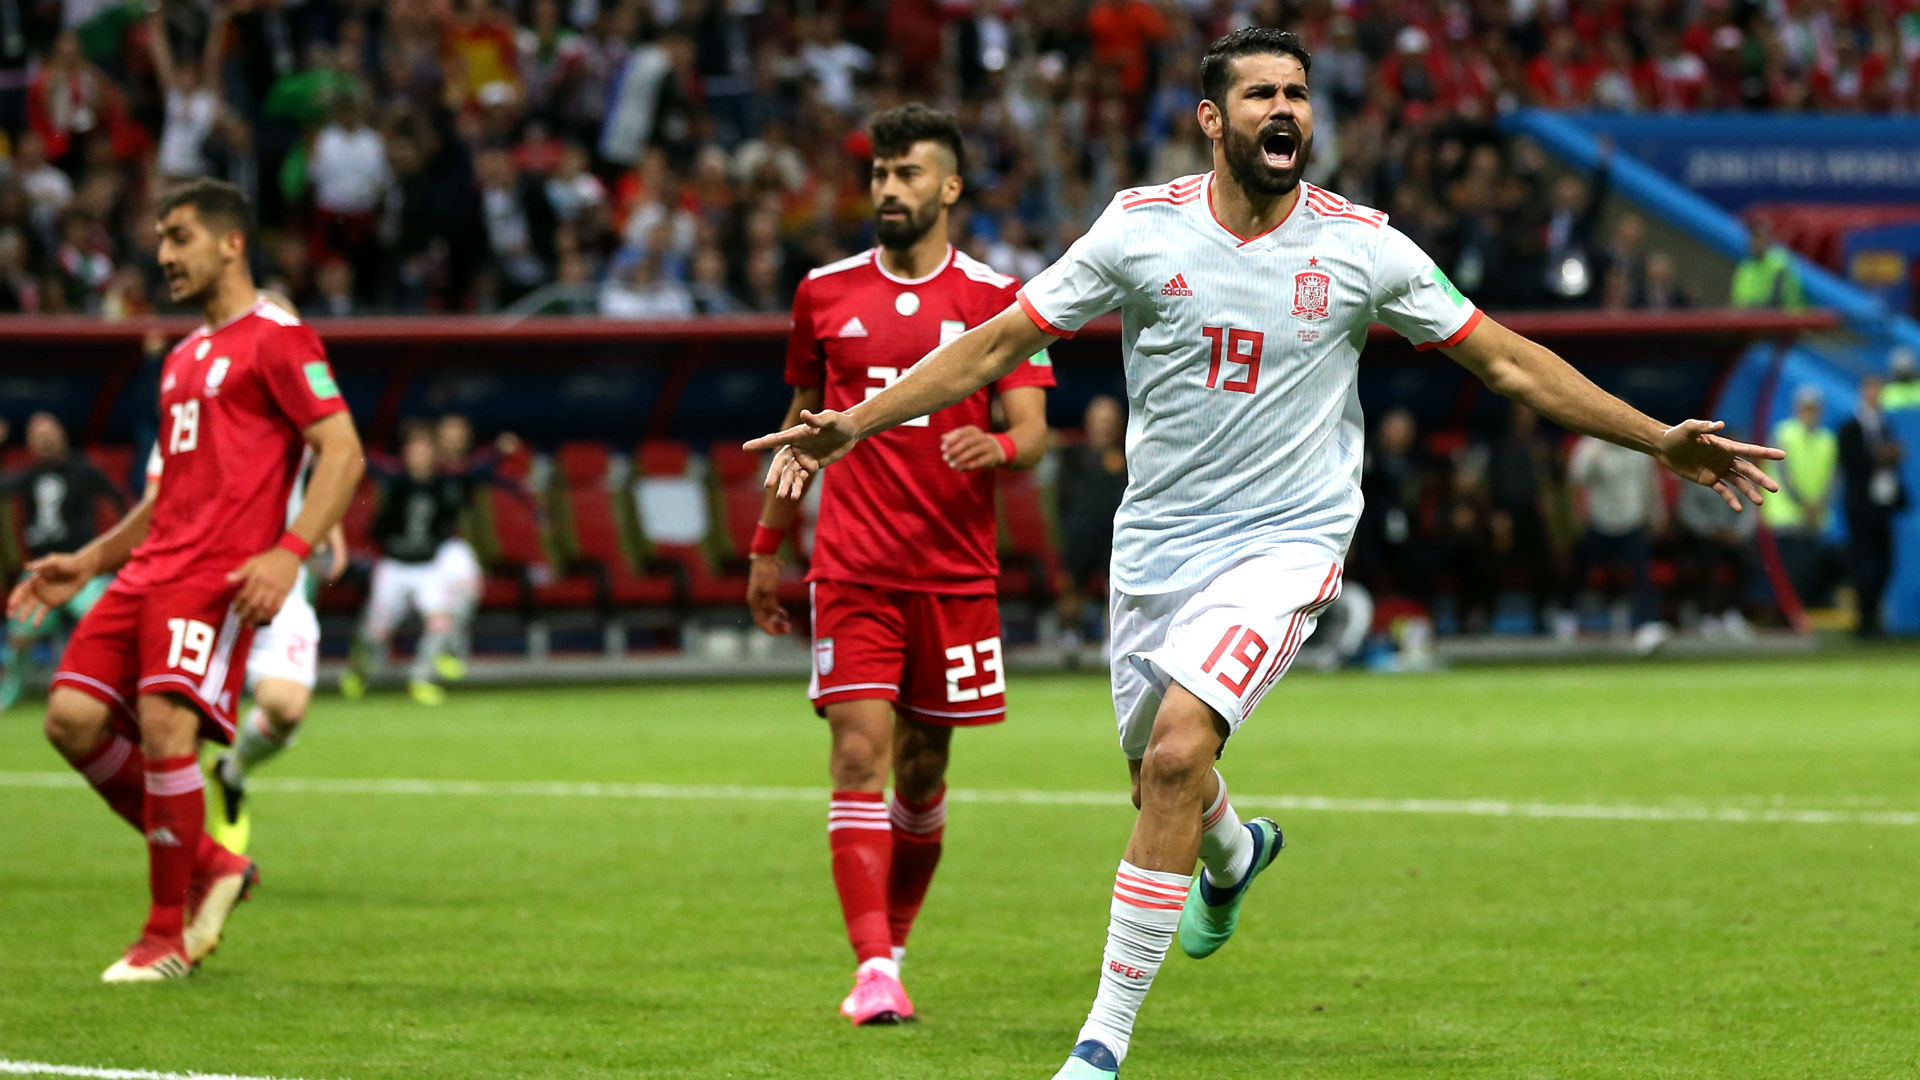 Spain vs Iran : Costa gets lucky goal